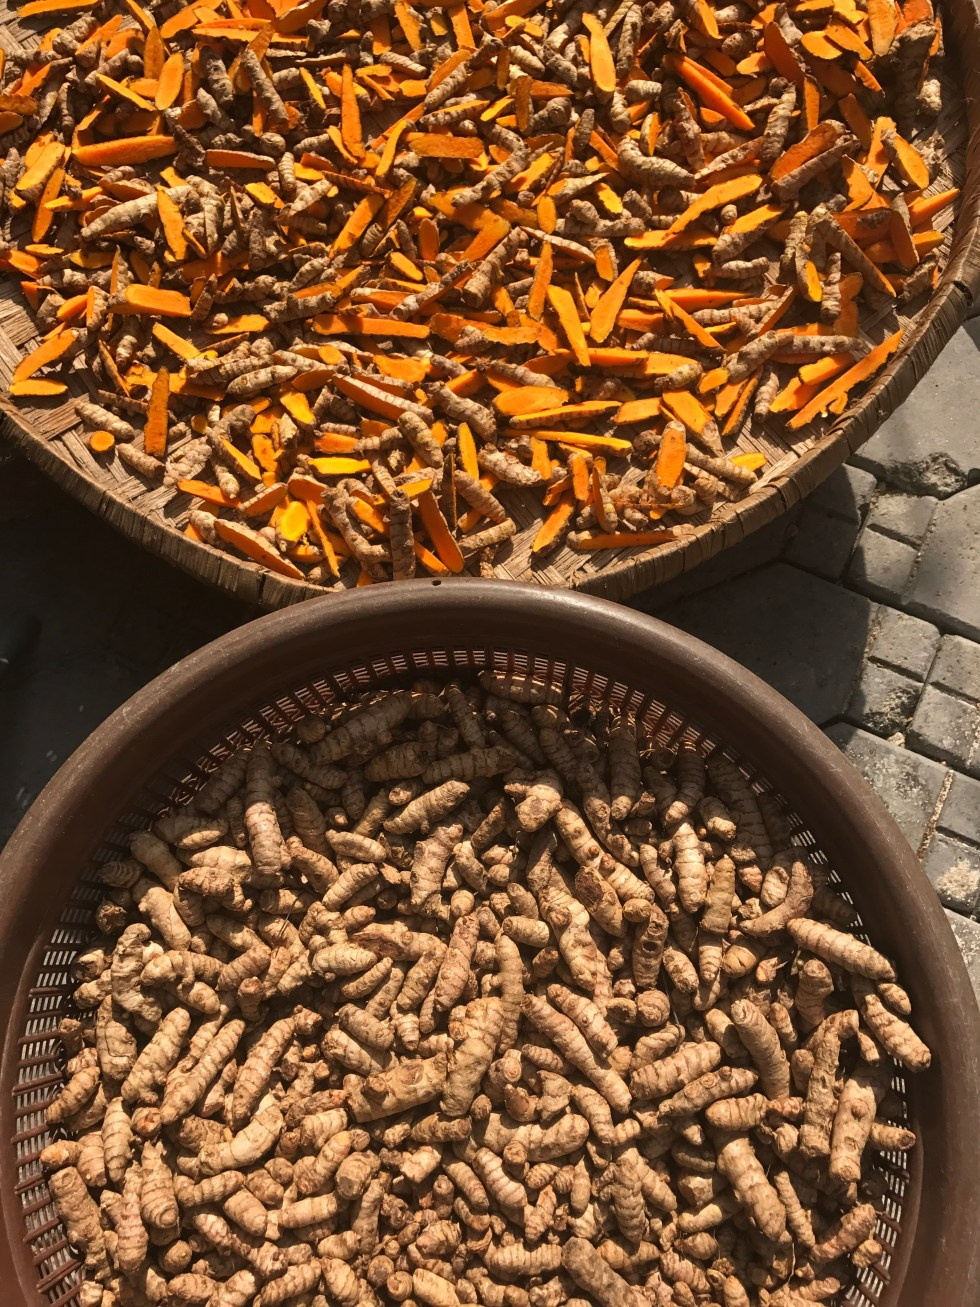 Shredded raw turmeric, processing fresh turmeric